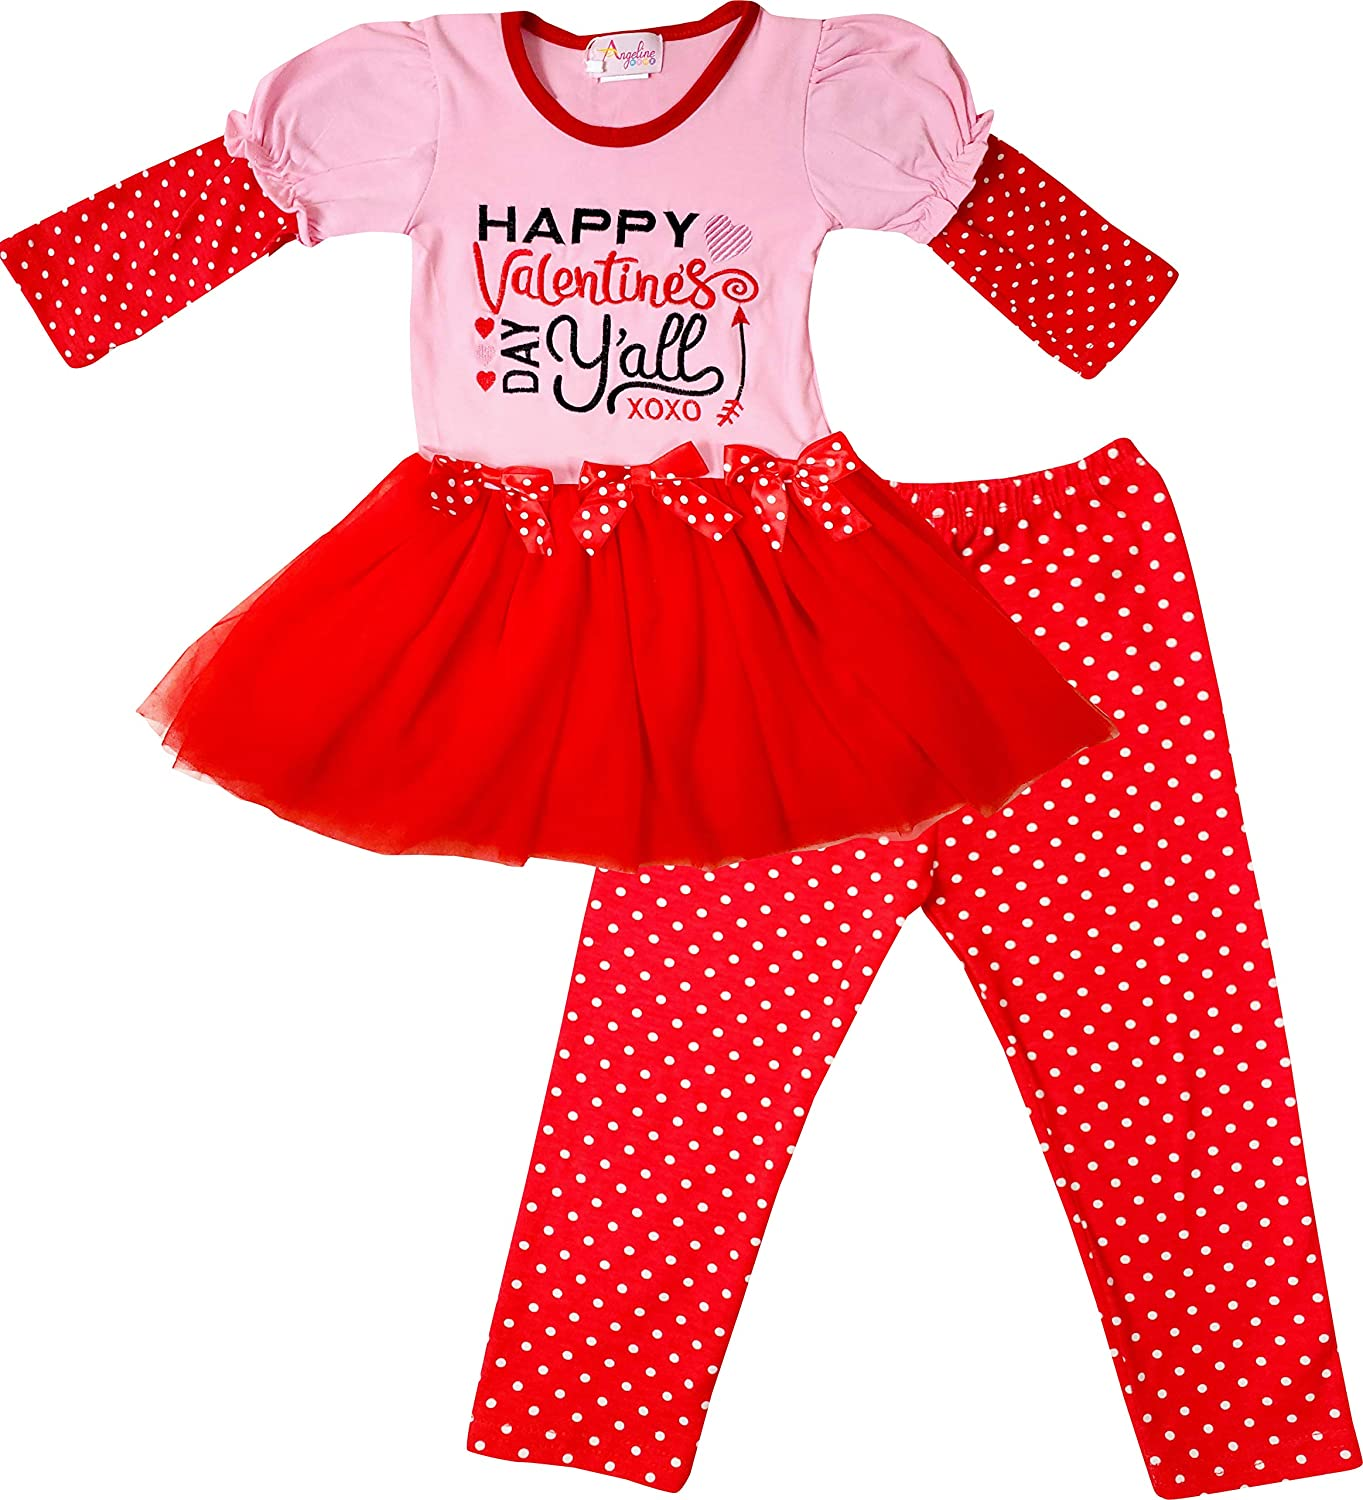 0f8b8cfd9 Amazon.com  Baby Toddler Little Girls Valentine s Day Dress - Unique ...